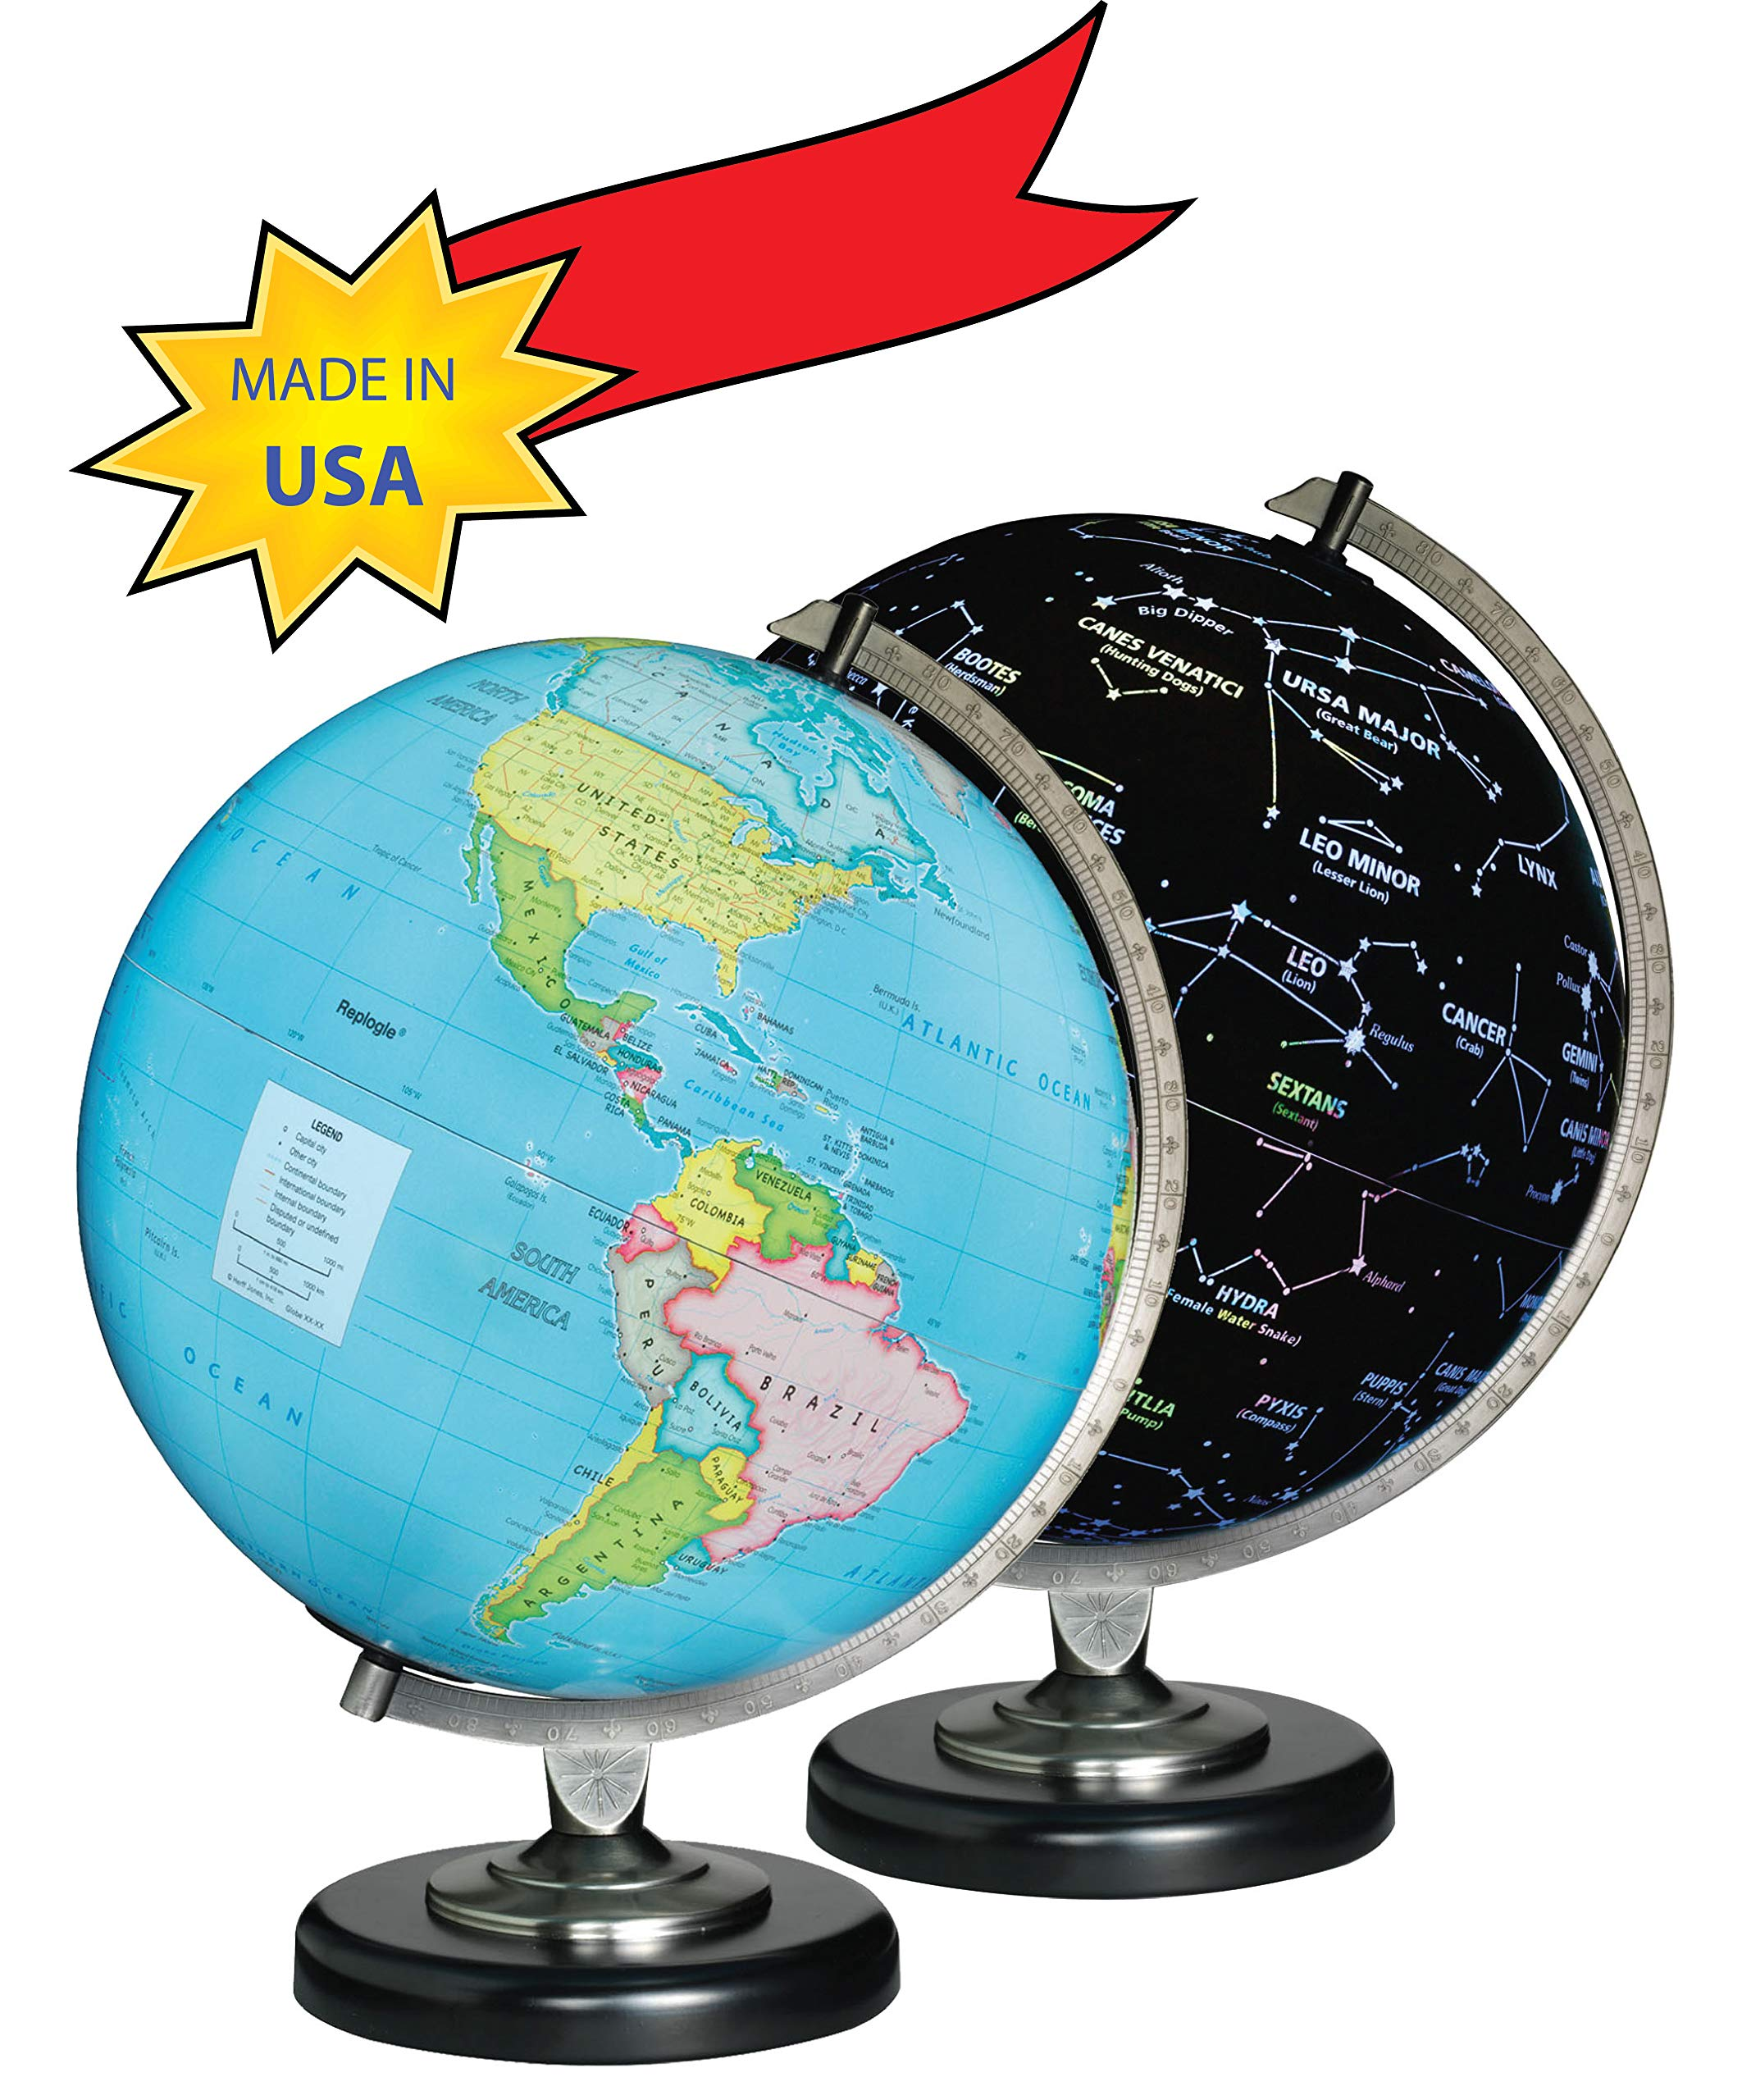 Replogle Day/Night Illuminated Globe, 12 Inches Political map on Outside and Constellations on Inside, Made in USA